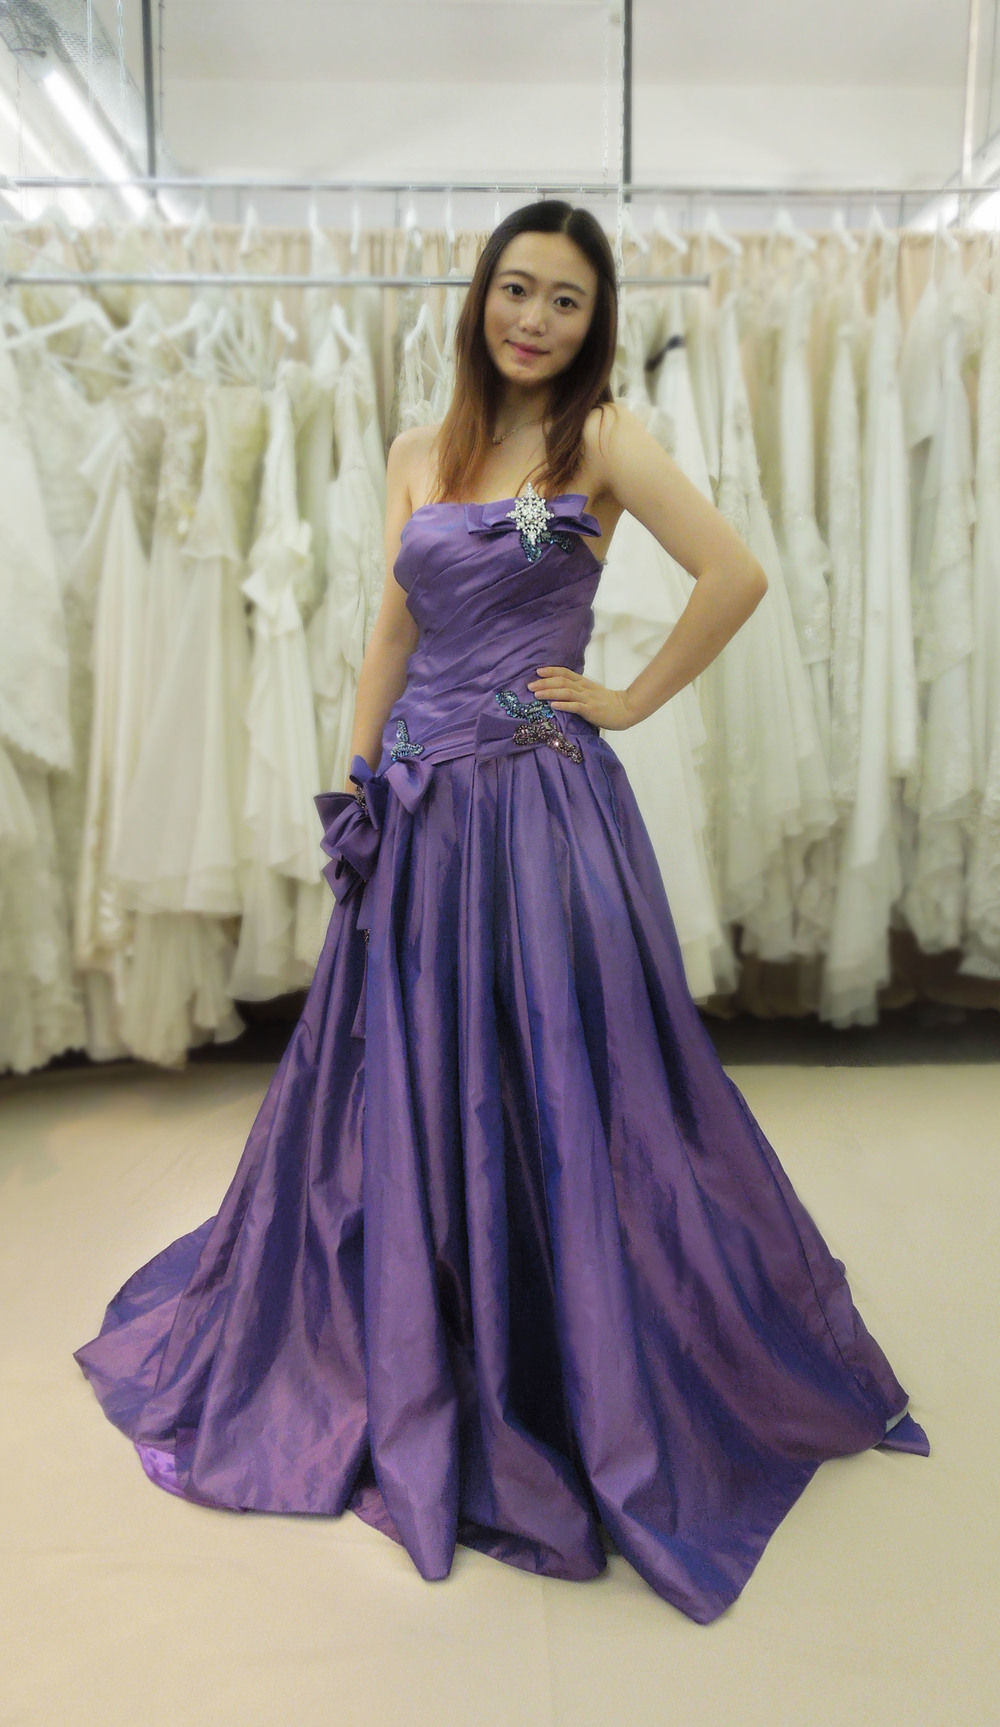 Sew Master Fashions - Formal gowns collection Brisbane